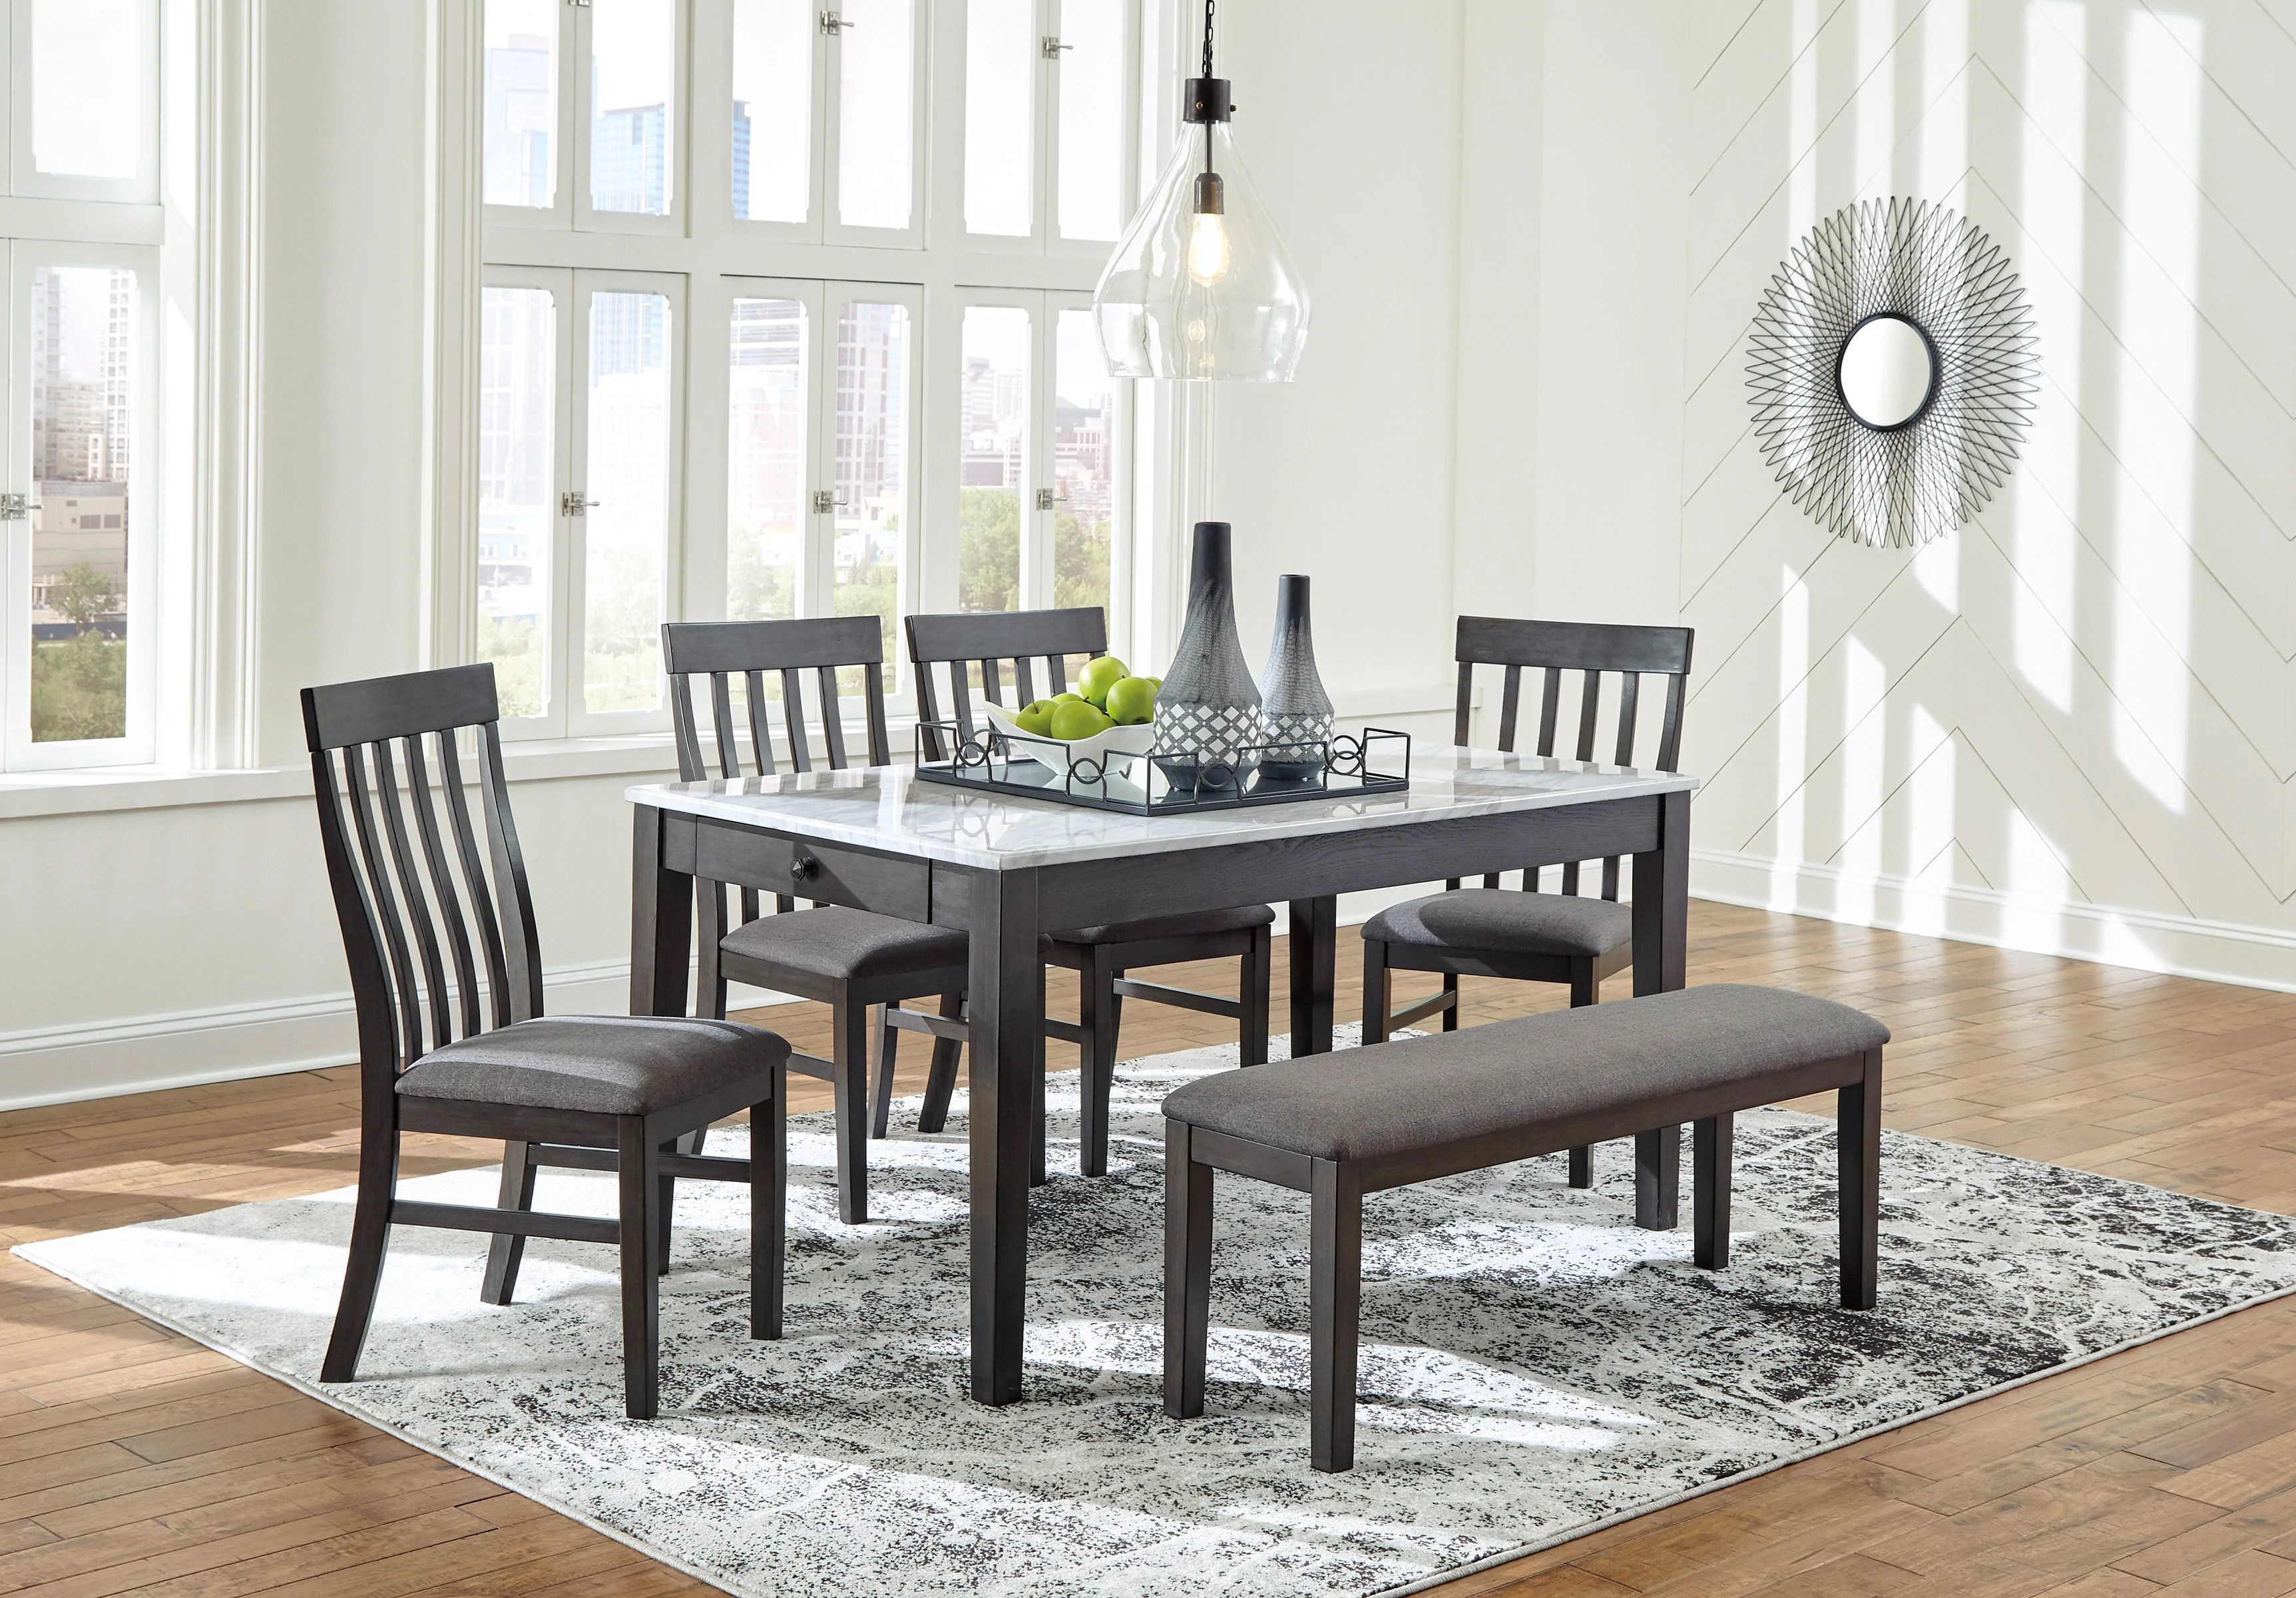 Special Luvoni White Charcoal Dining Set From Ashley Luna Furniture